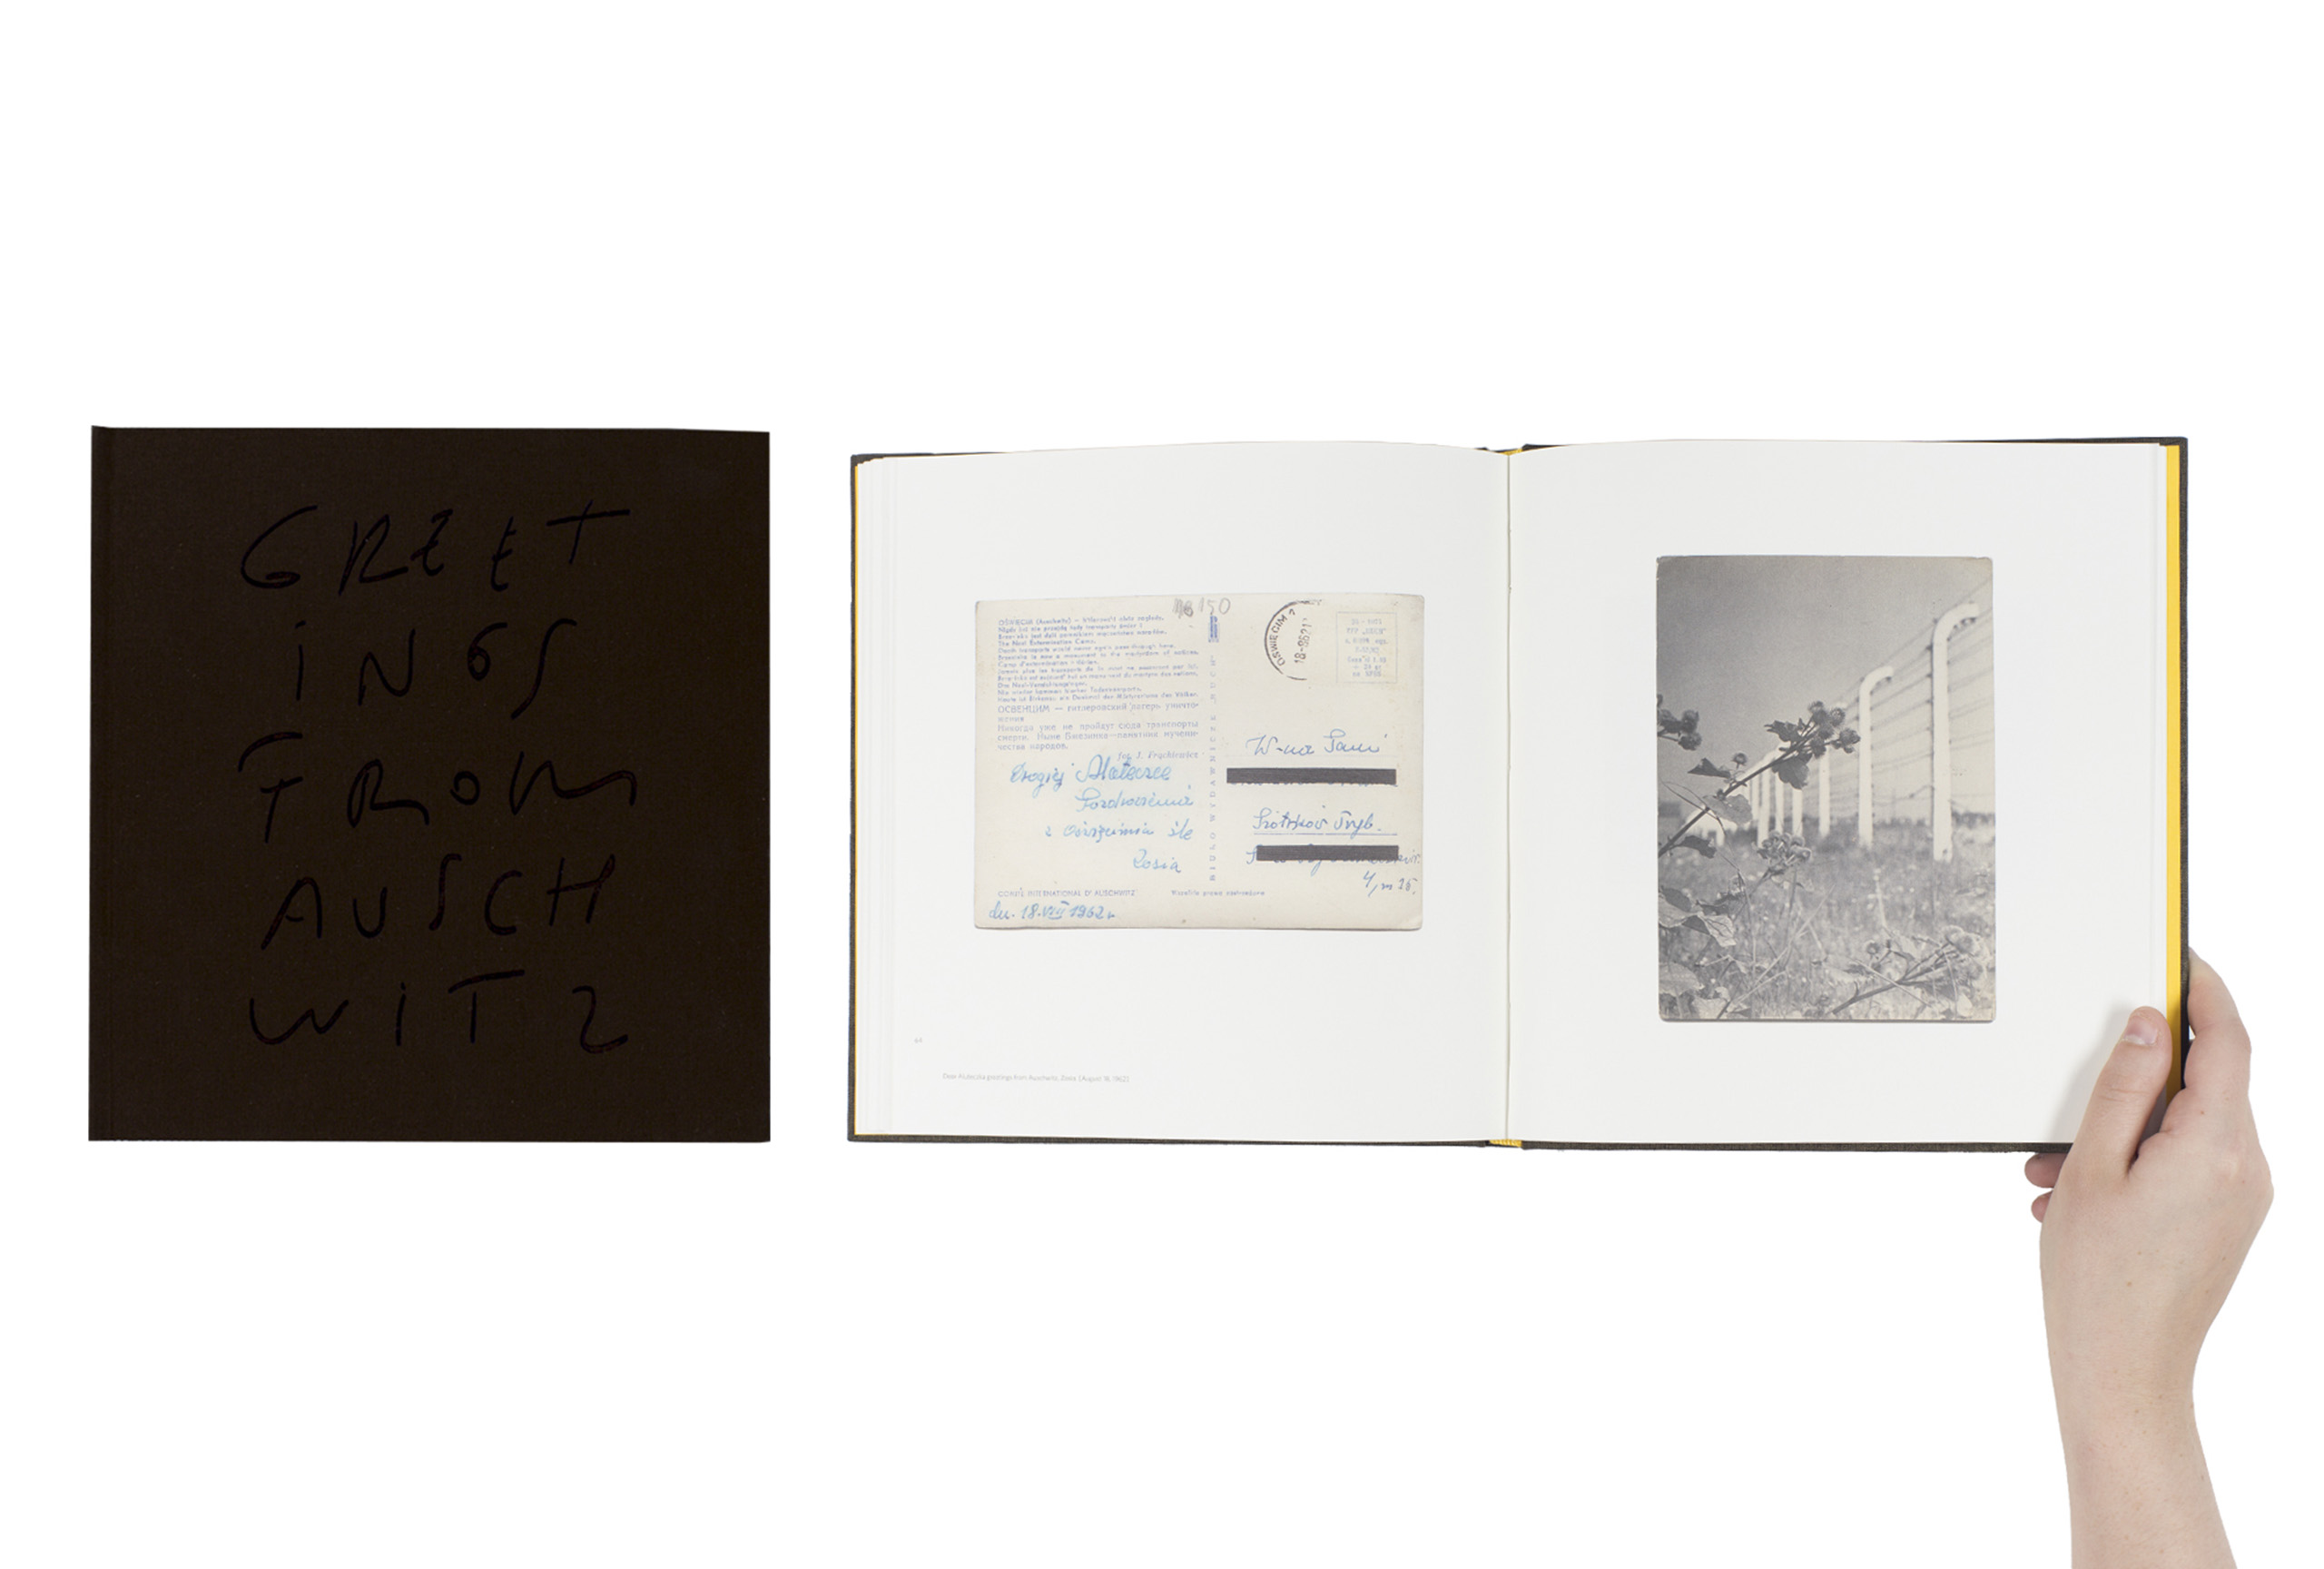 Greetings from Auschwitz by Paweł Szypulski, published by Edition Patrick Frey/Foundation for Visual Arts. Short-listed title for First PhotoBook.